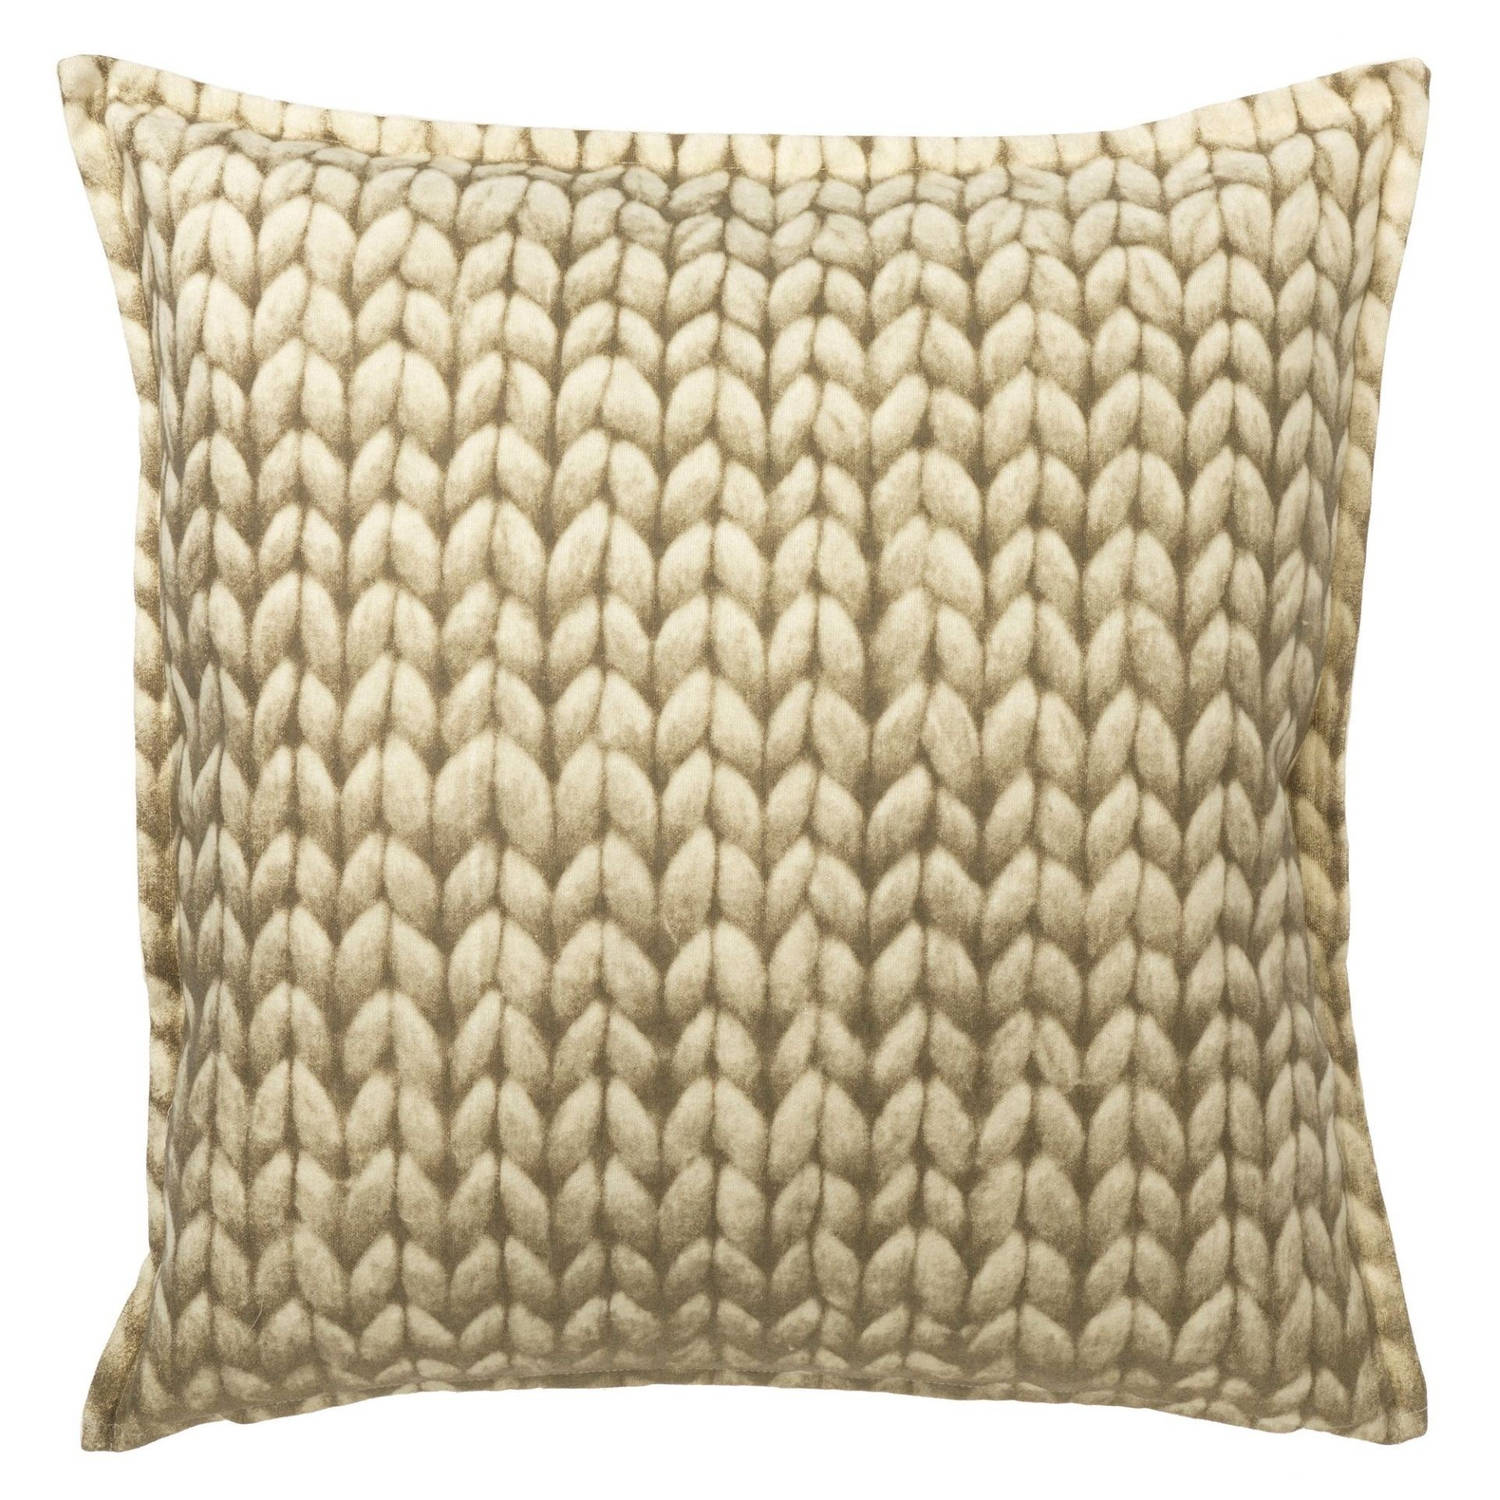 Dutch Decor Kussenhoes Galway 70x70 cm taupe